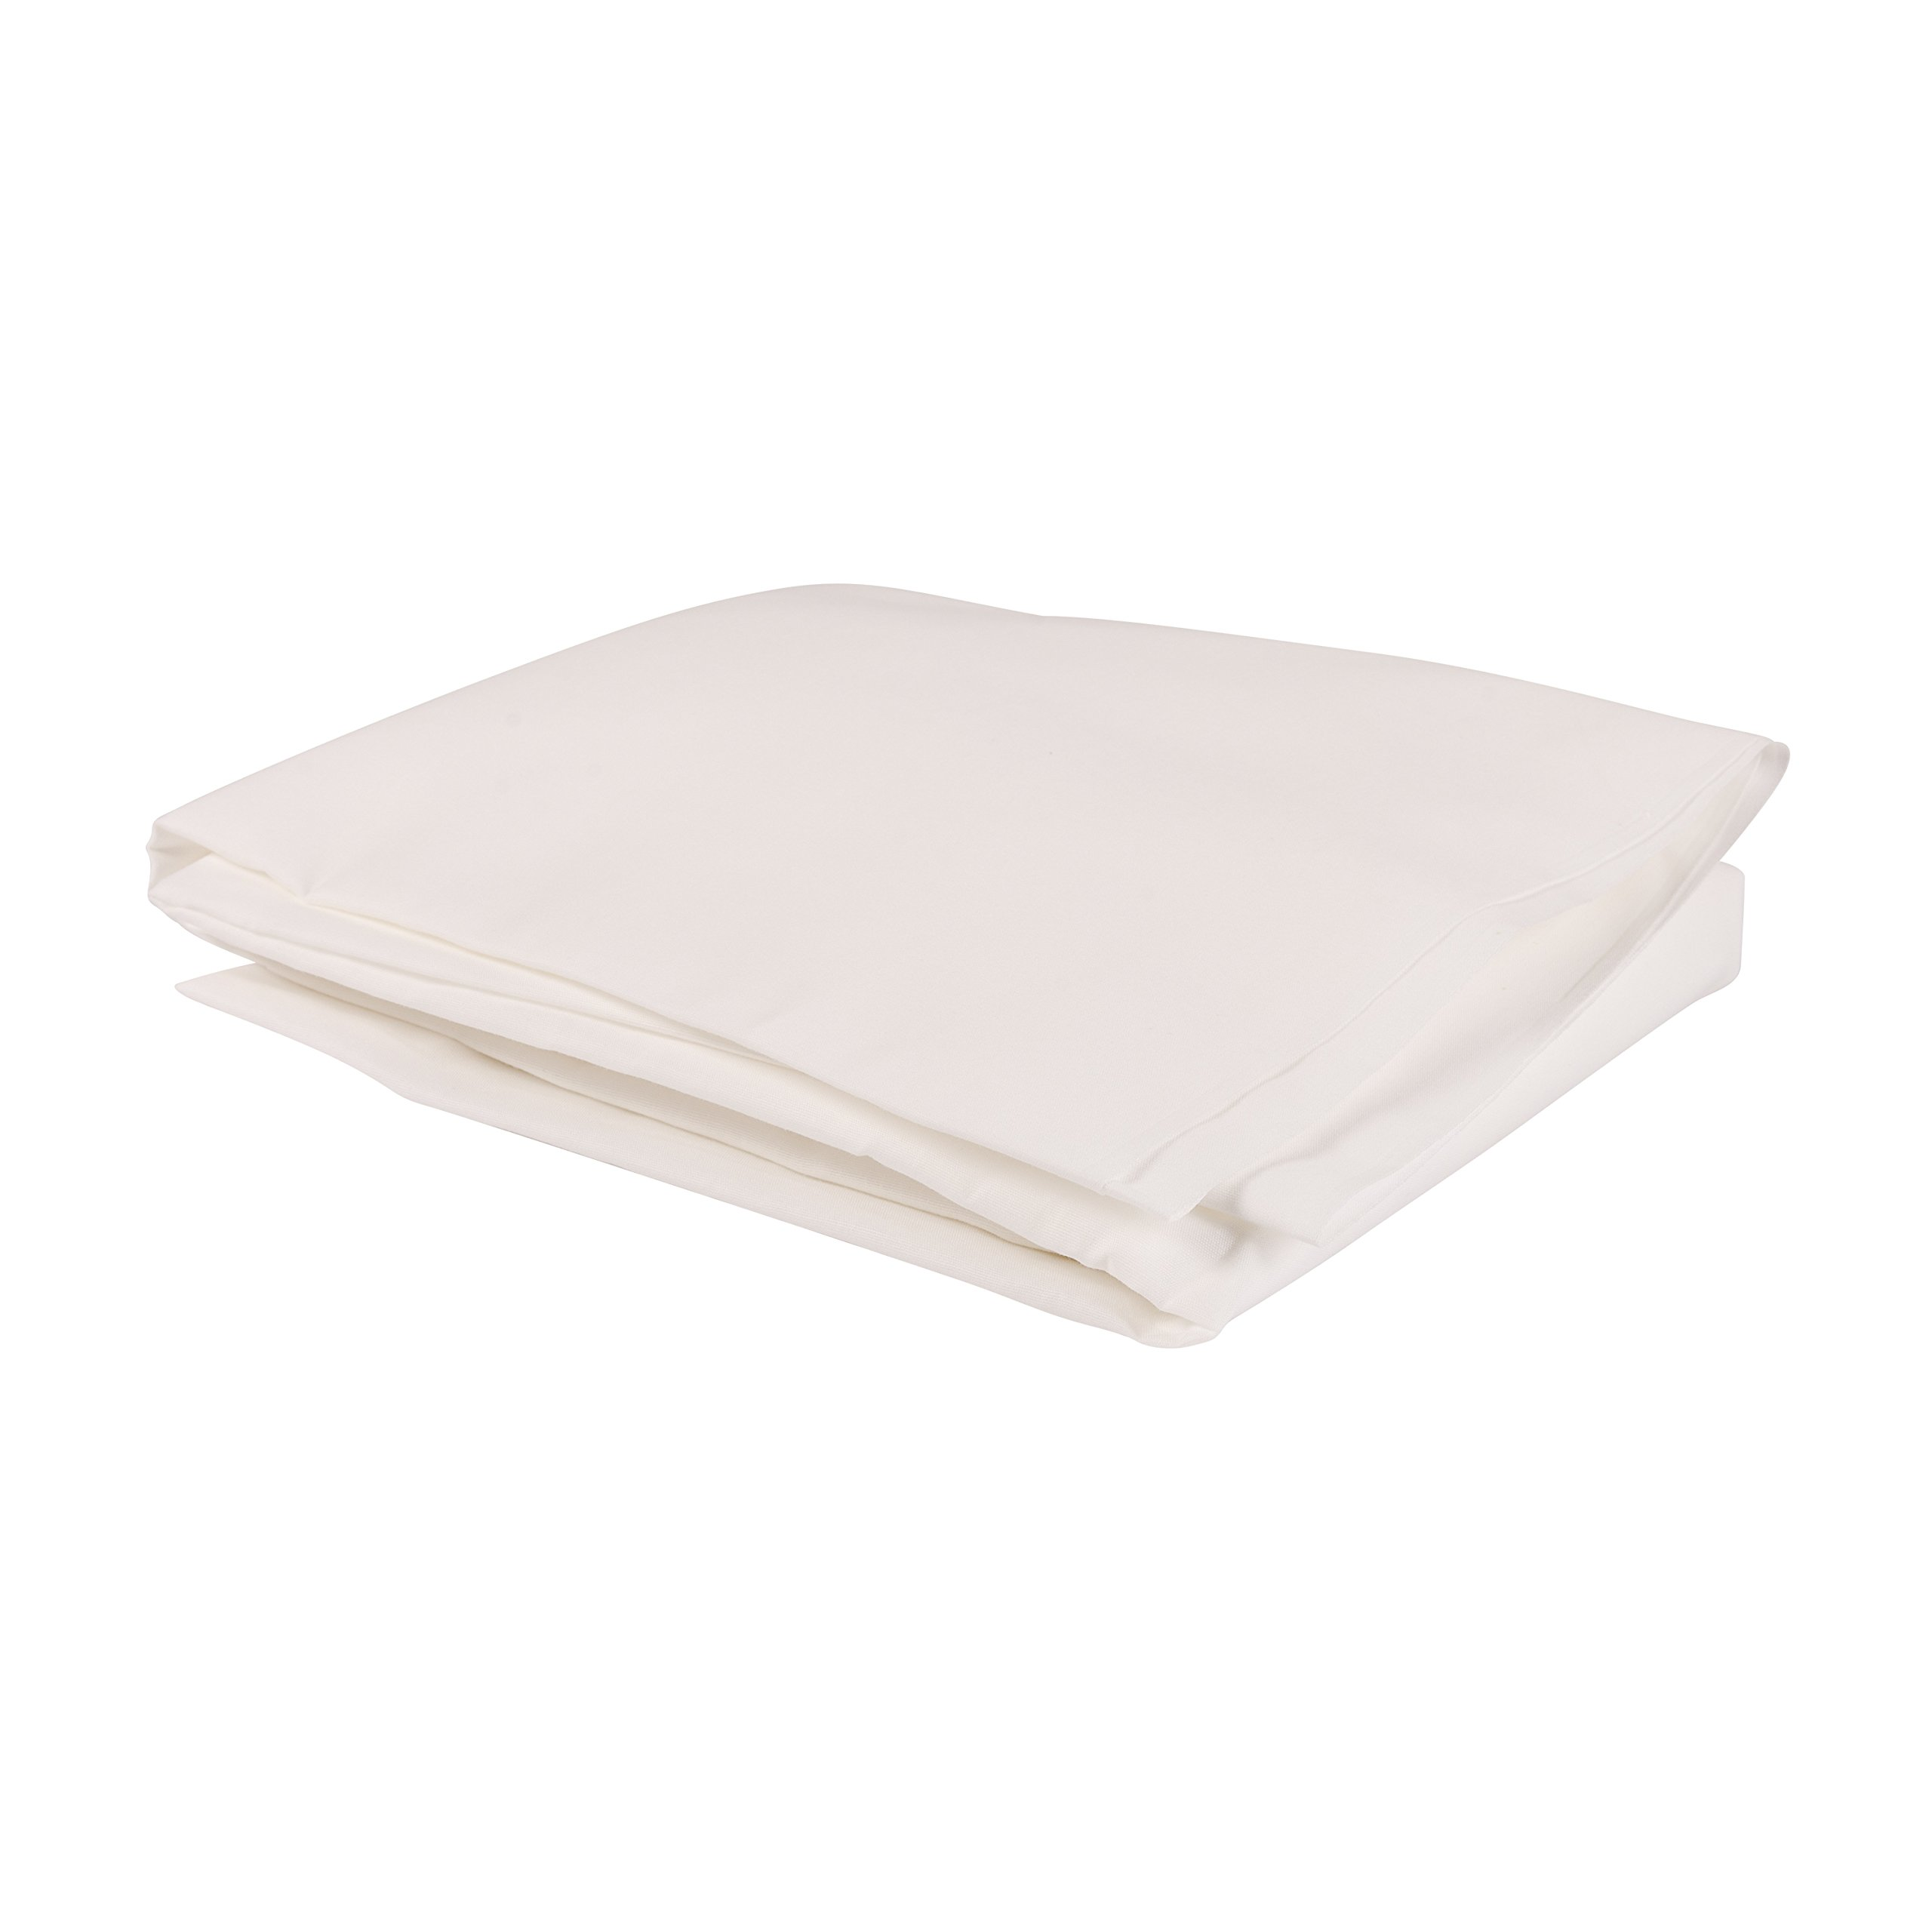 DMI Fitted Hospital Bed Bottom Sheet, Gentle Knit Fabric, Extra Long 36 x 84 x 6, 132 Count, White, Made in the USA